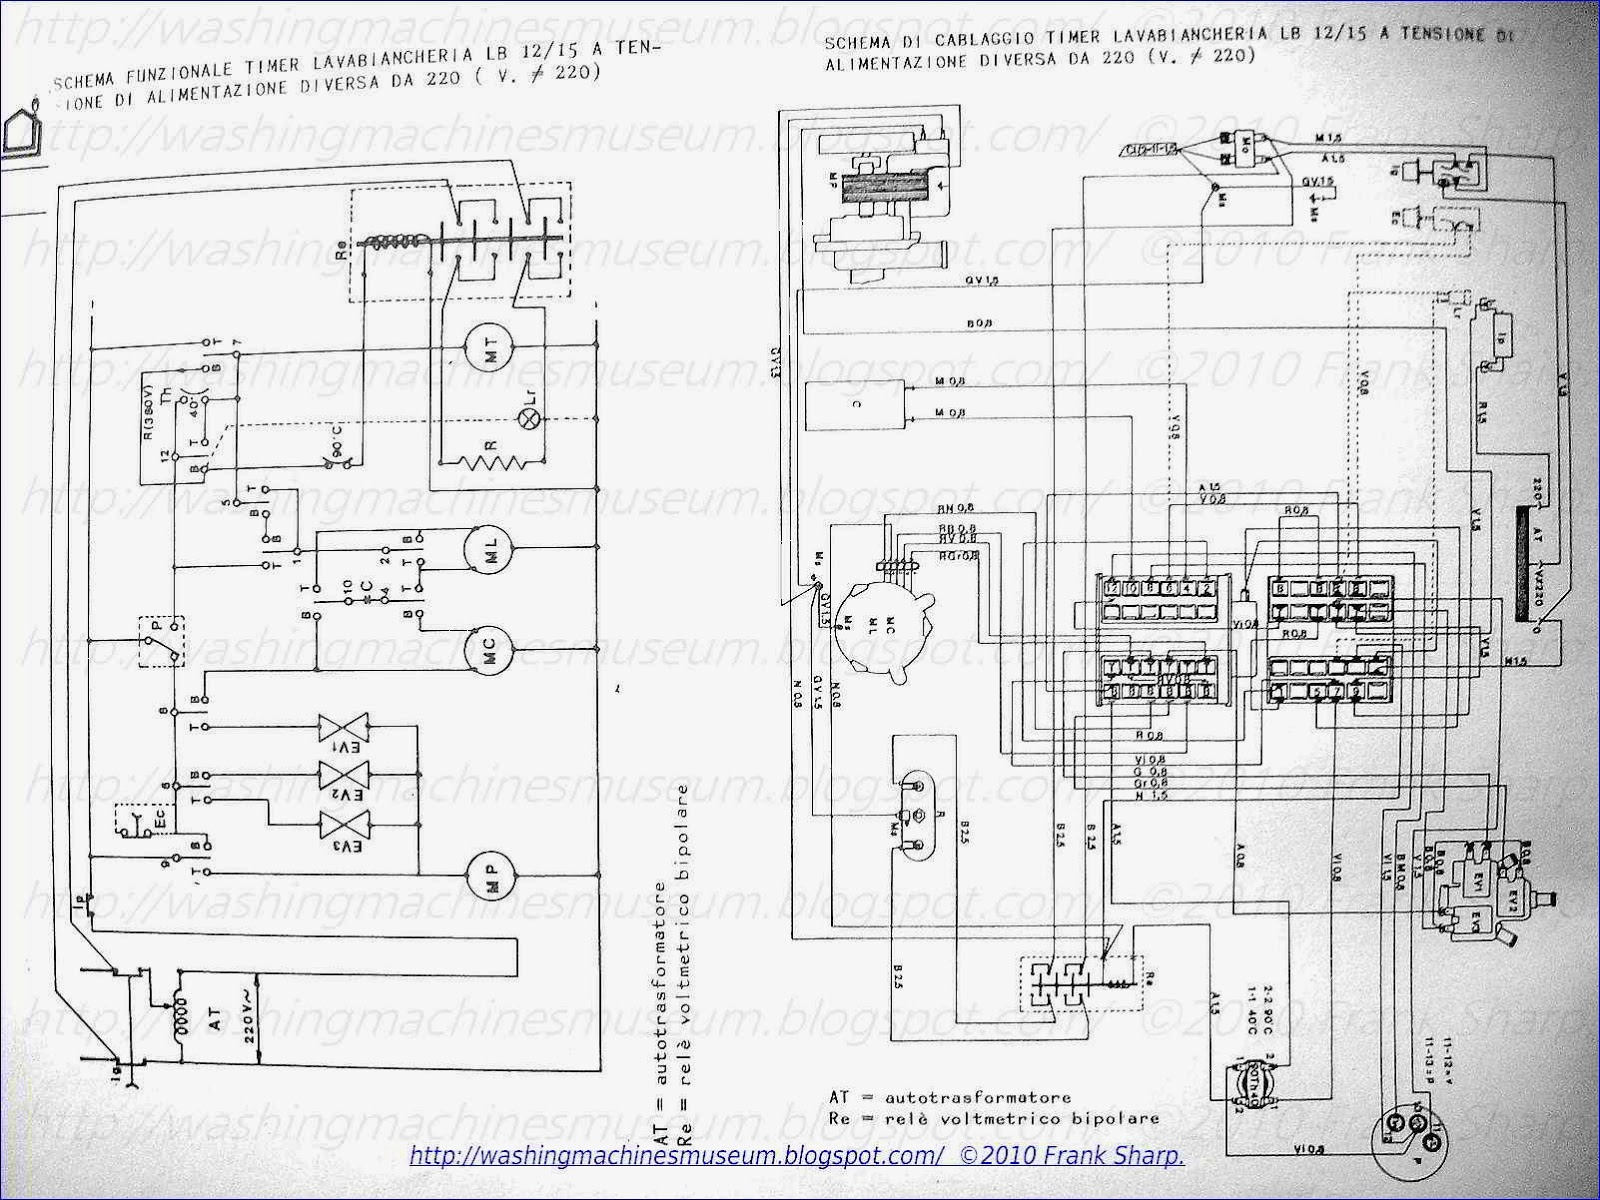 emerson spa motor wiring diagram images this emerson motor wiring diagram emerson rescue motor wiring diagram